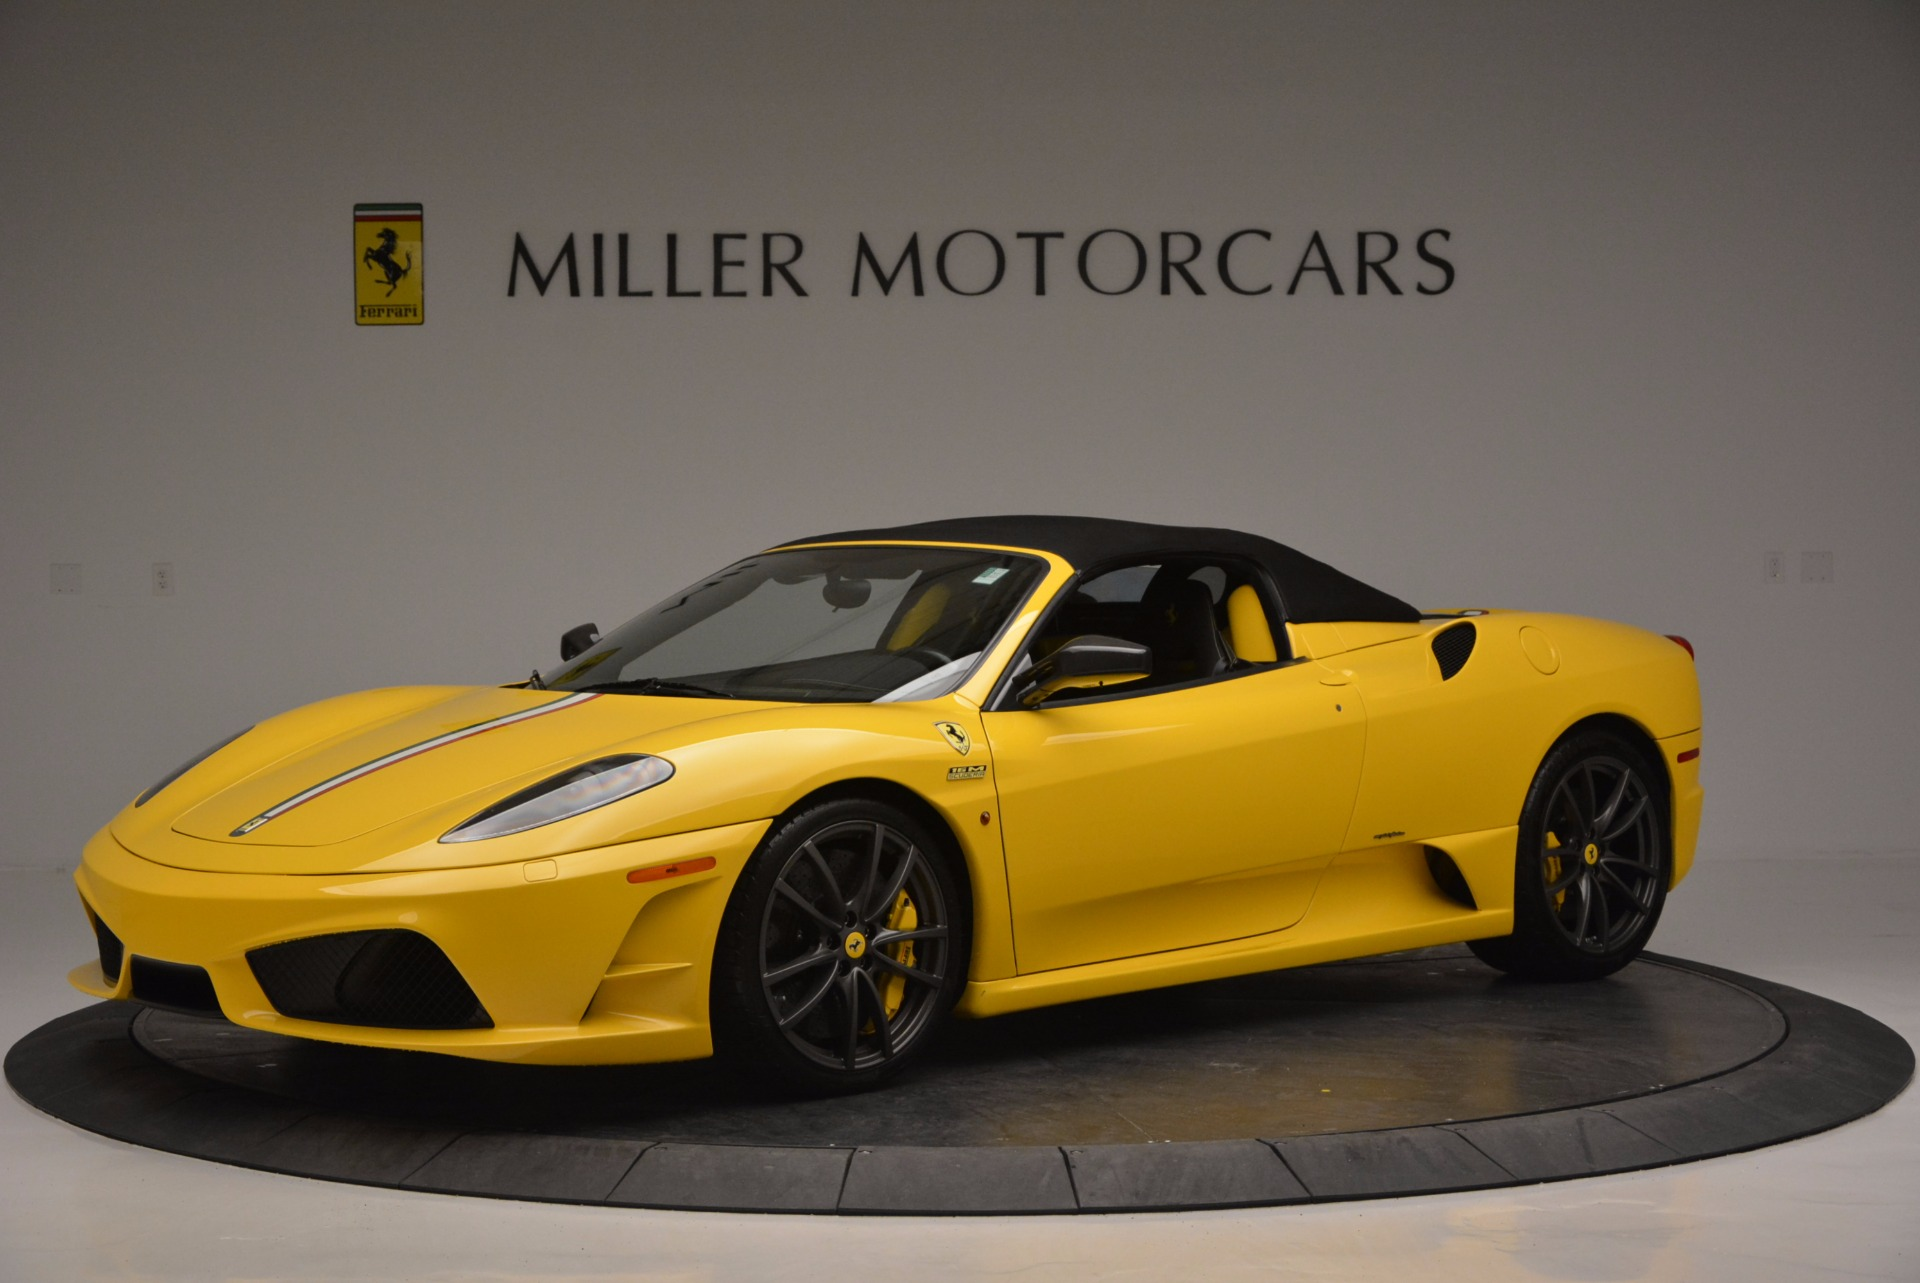 Used 2009 Ferrari F430 Scuderia 16M For Sale In Greenwich, CT 856_p14